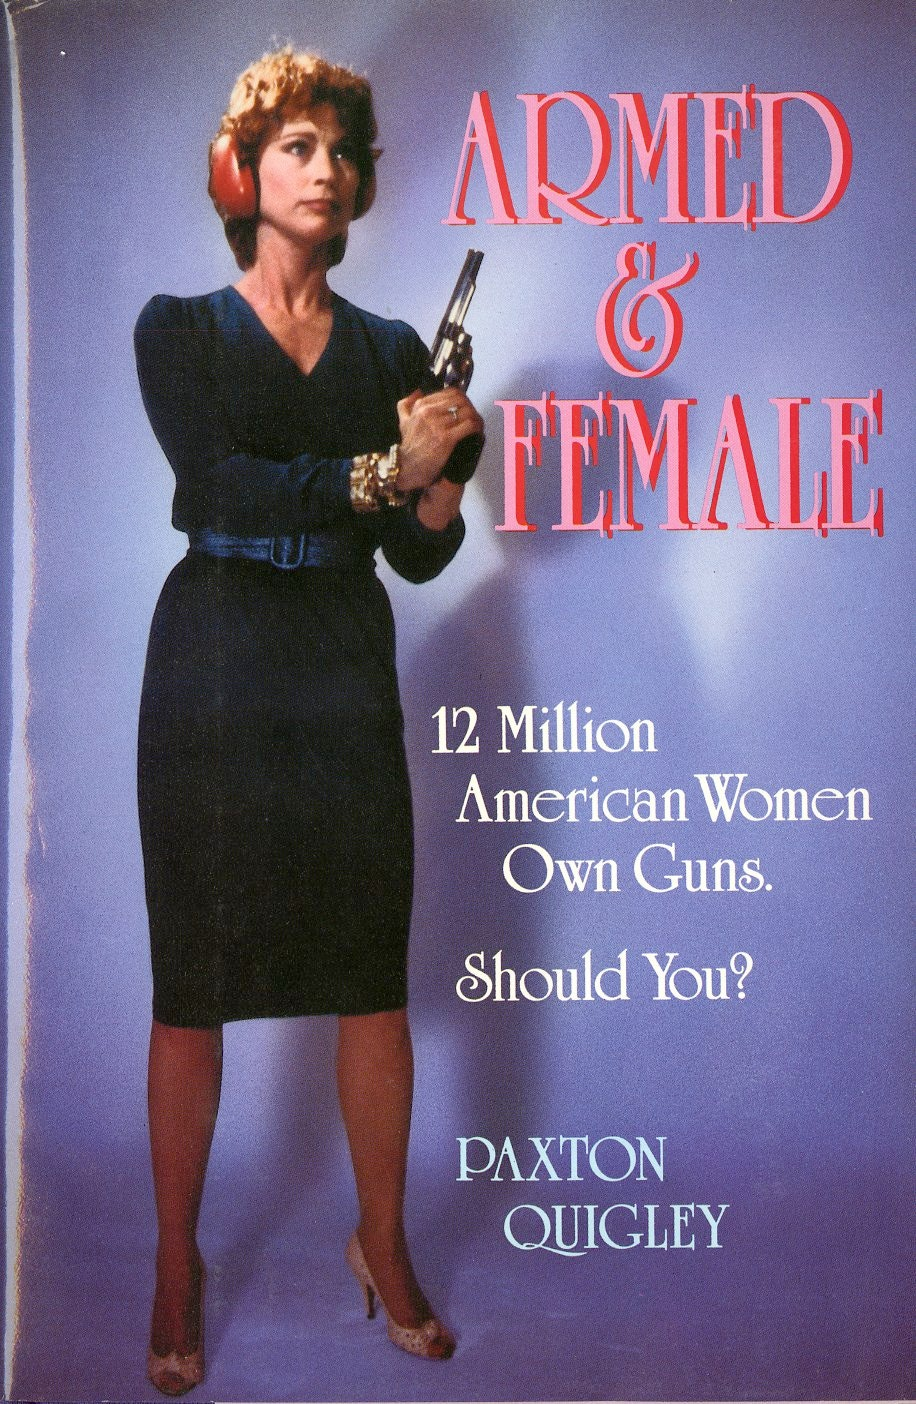 Cover of Armed & Female